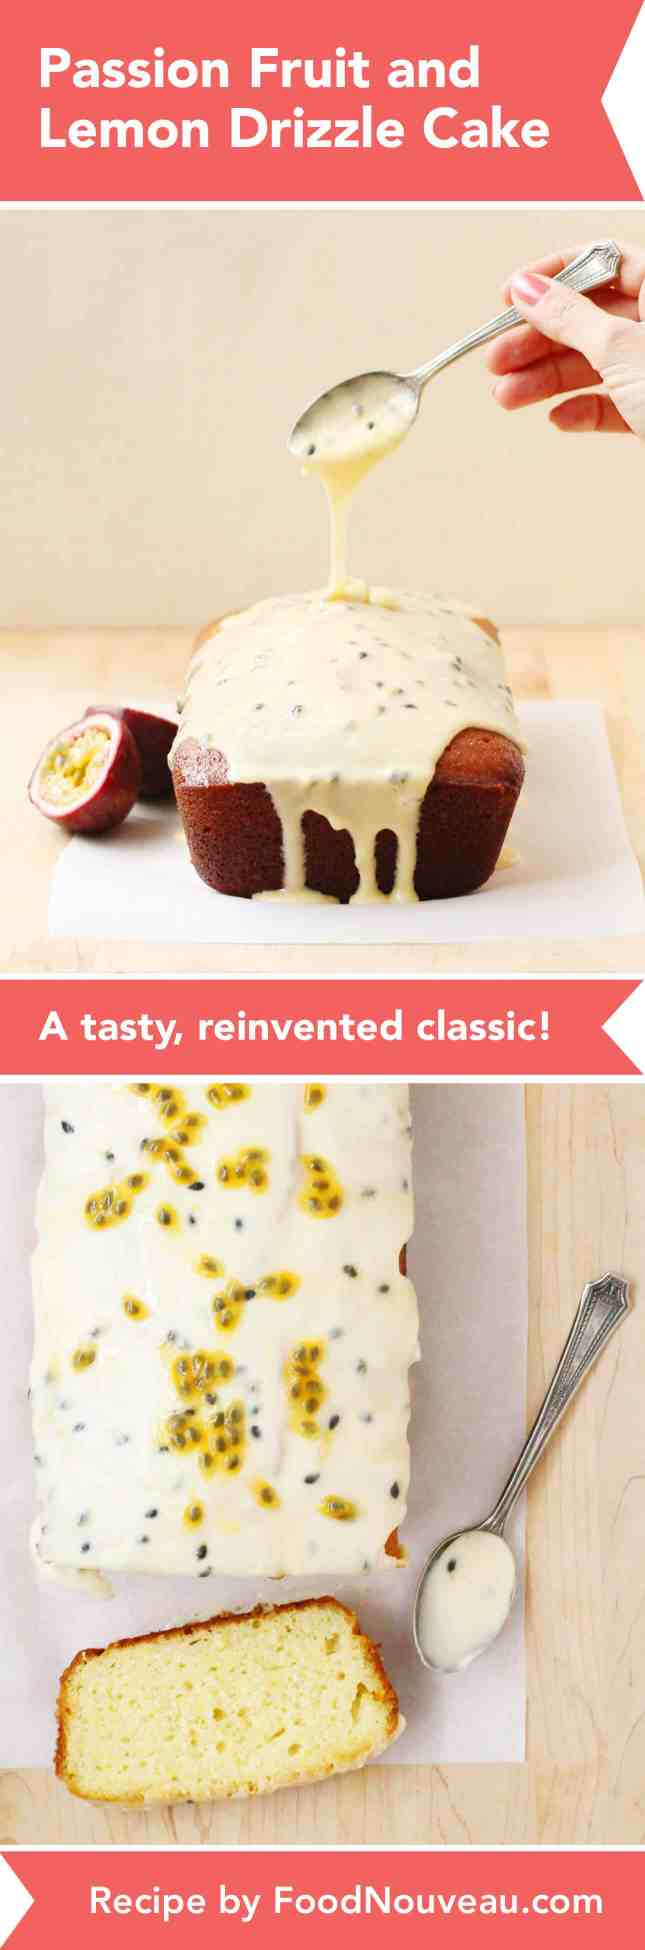 Passion Fruit and Lemon Drizzle Cake: A Tasty, Reinvented Classic! // FoodNouveau.com